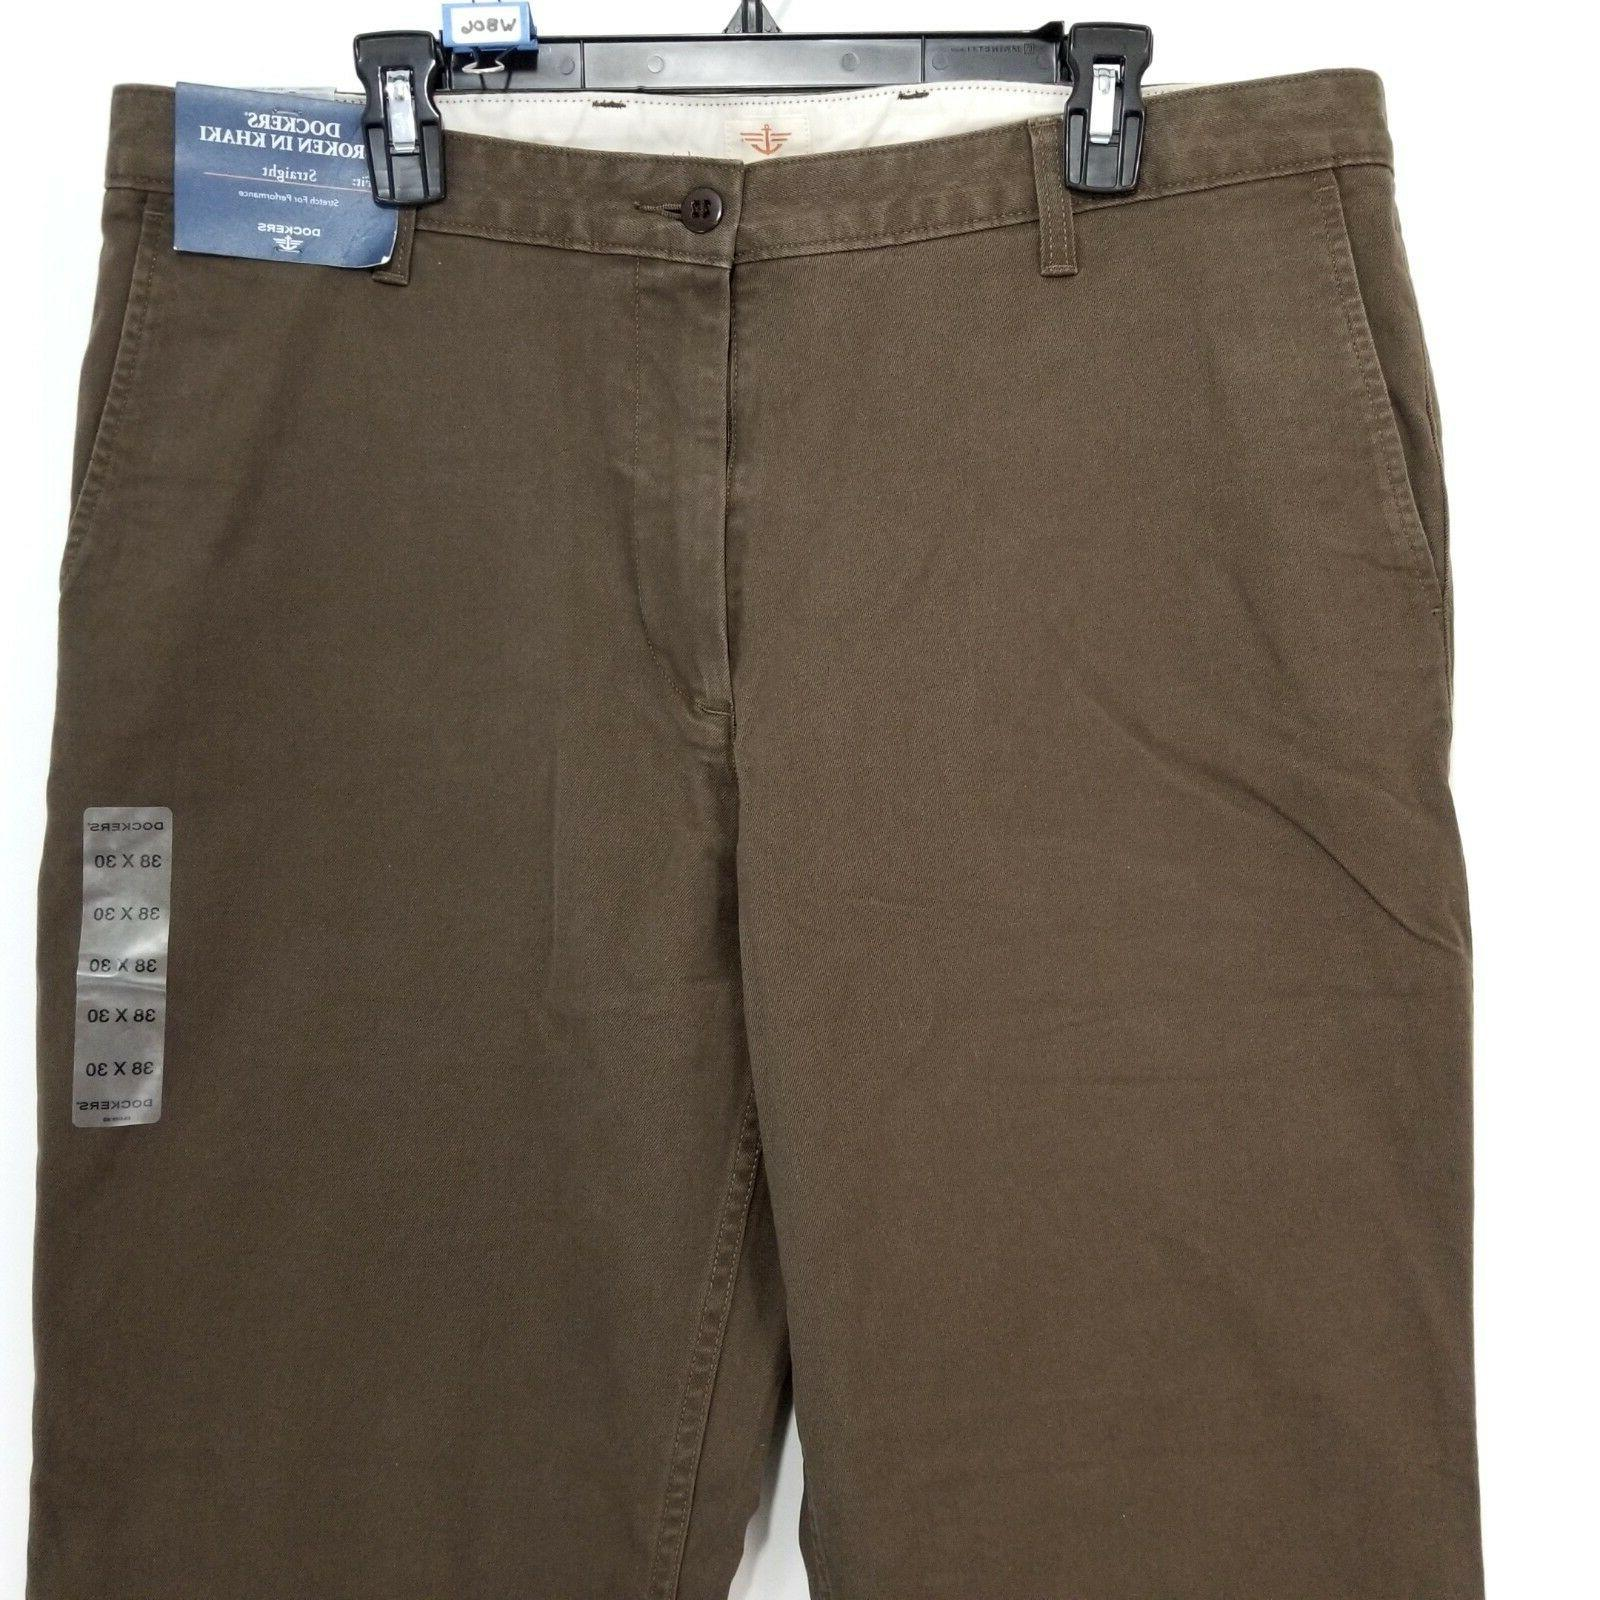 NWT Brown Broken In Pants x Men $58